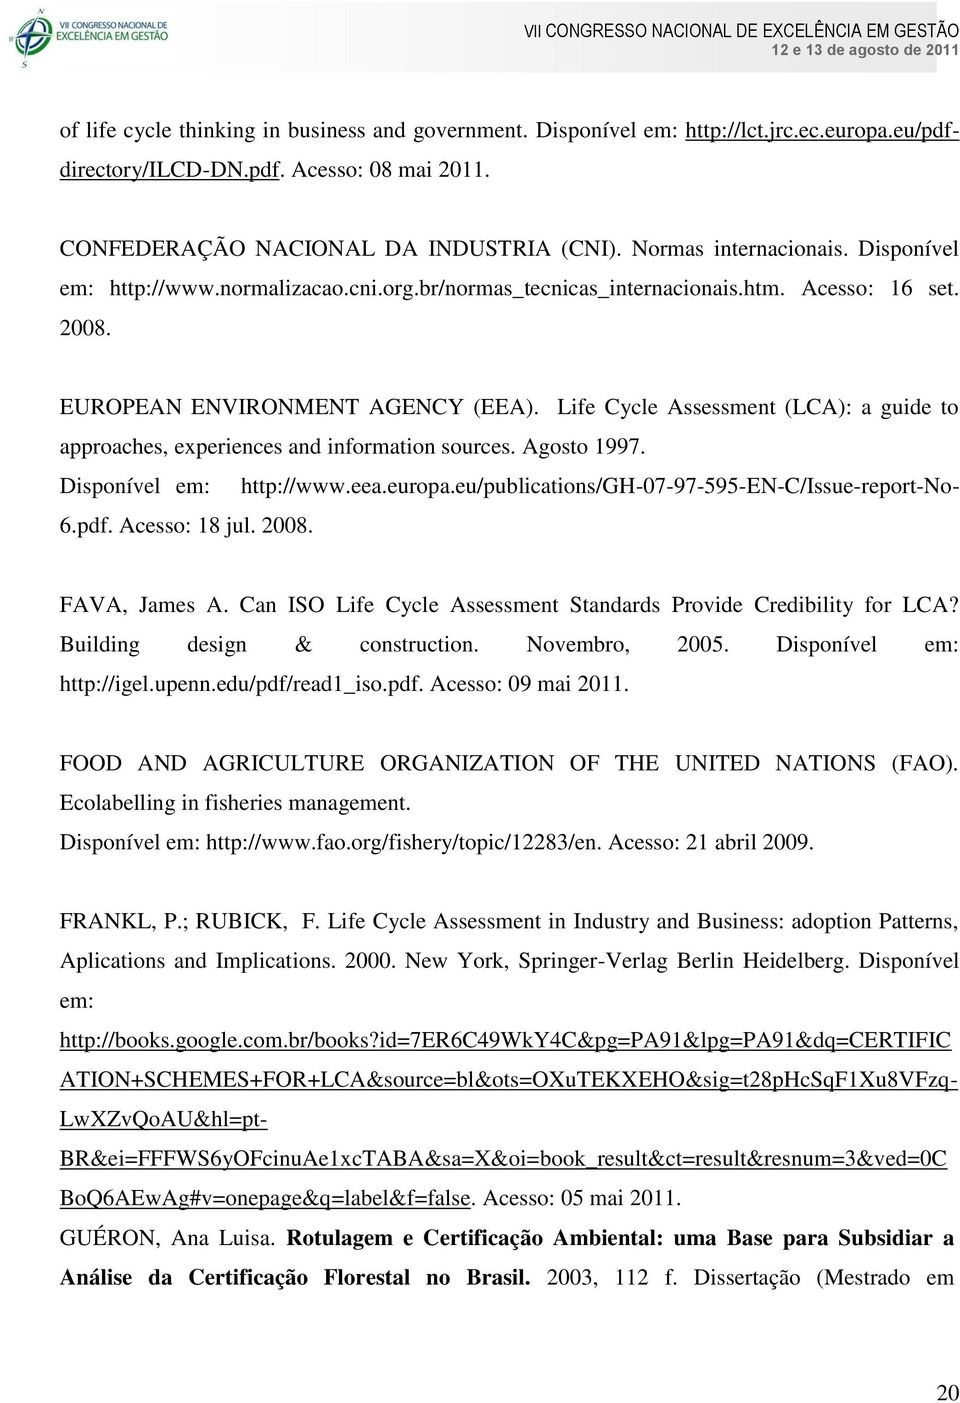 Can ISO Life Cycle Assessment Standards Provide Credibility for LCA? Building design & construction. Novembro, 2005. Disponível em: http://igel.upenn.edu/pdf/read1_iso.pdf. Acesso: 09 mai 2011.